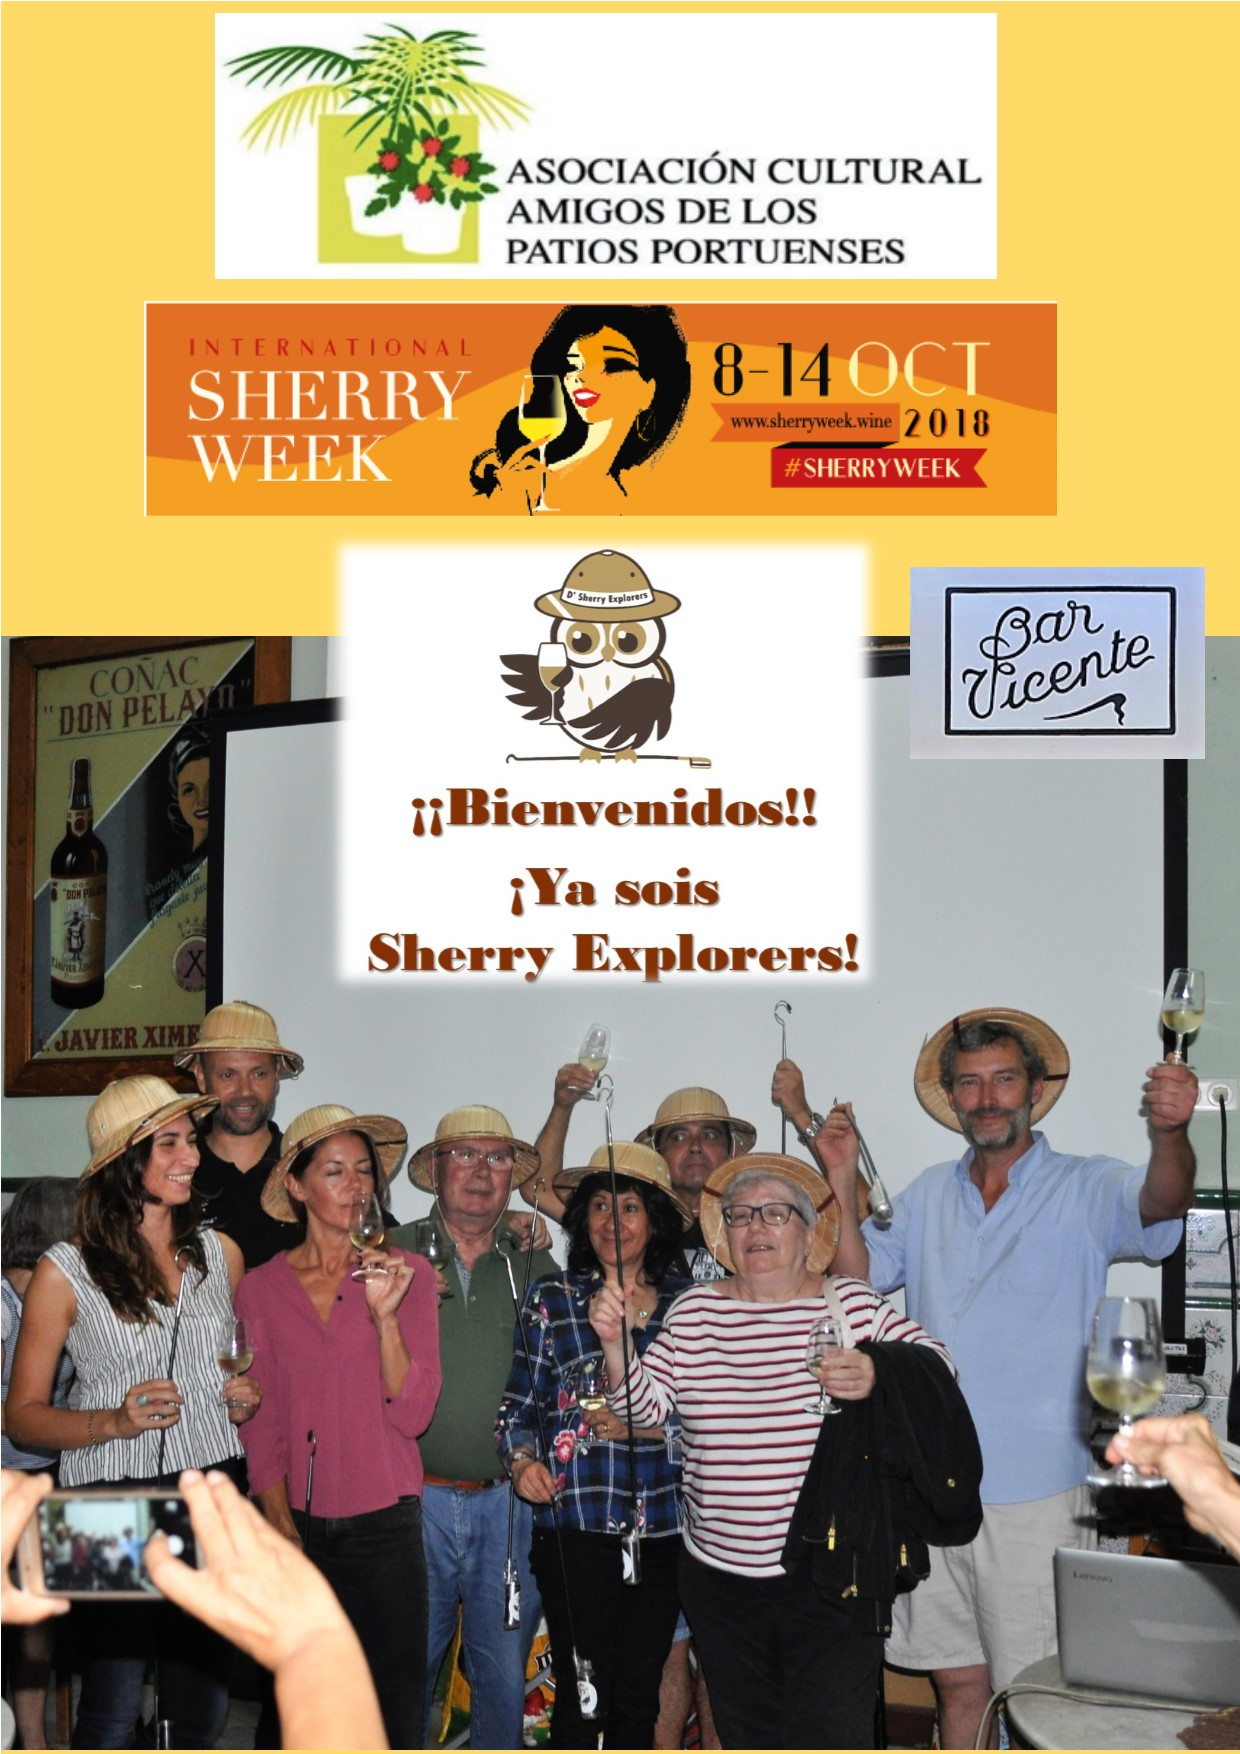 International Sherry Week con la Asociación de Amigos de los Patios Portuenses en el Bar Vicente/ Celebrating International Sherry Week, with the Association of the Friends of El Puerto´s Patios, at the Bar Vicente